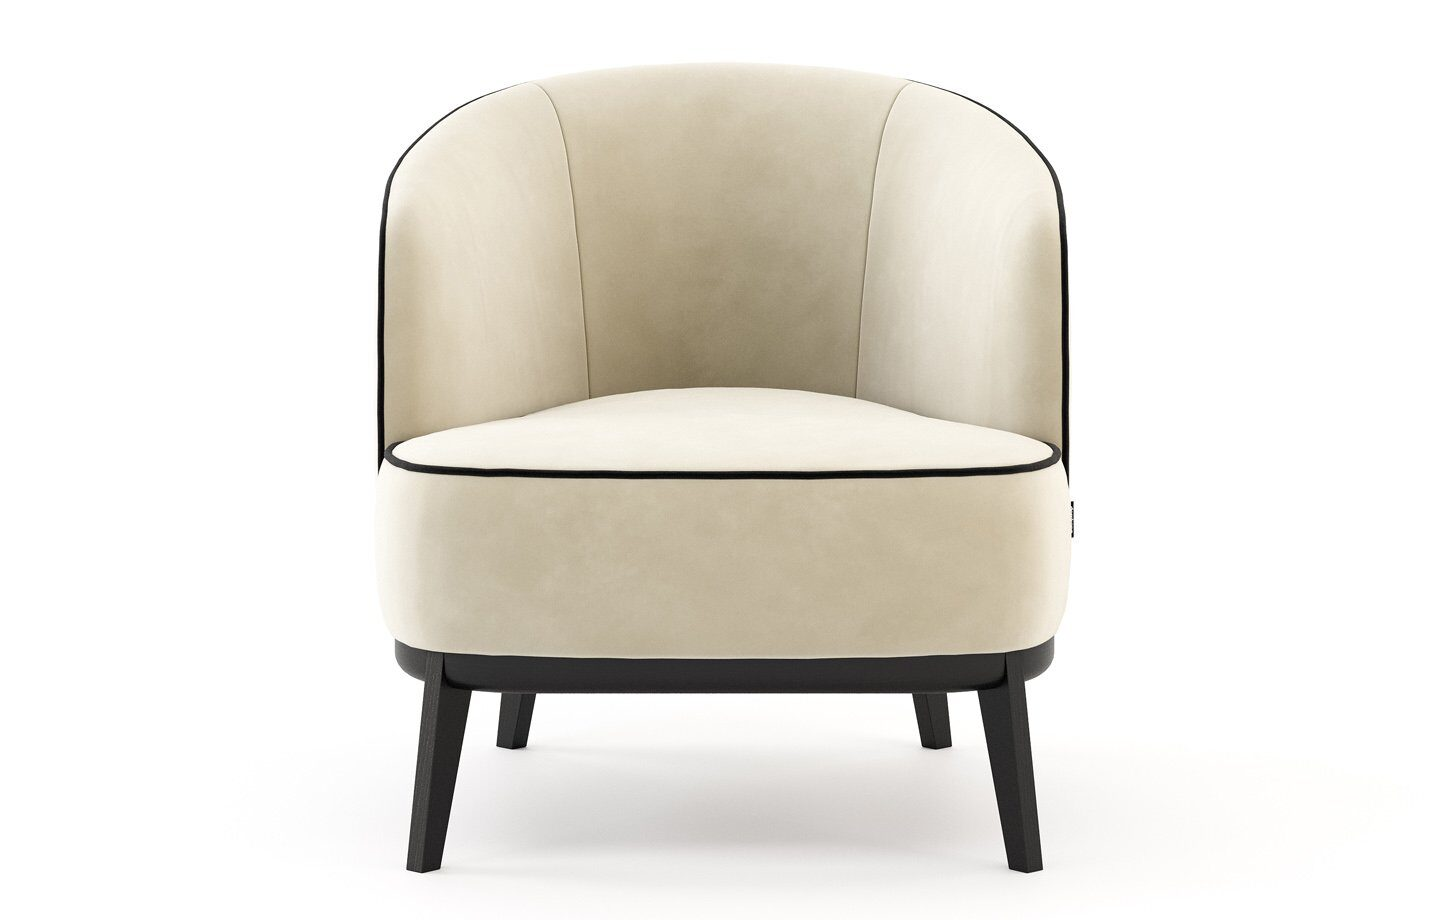 White-Elephant-Low-Lounge-Chair-by-fabiia-furniture-signature-2